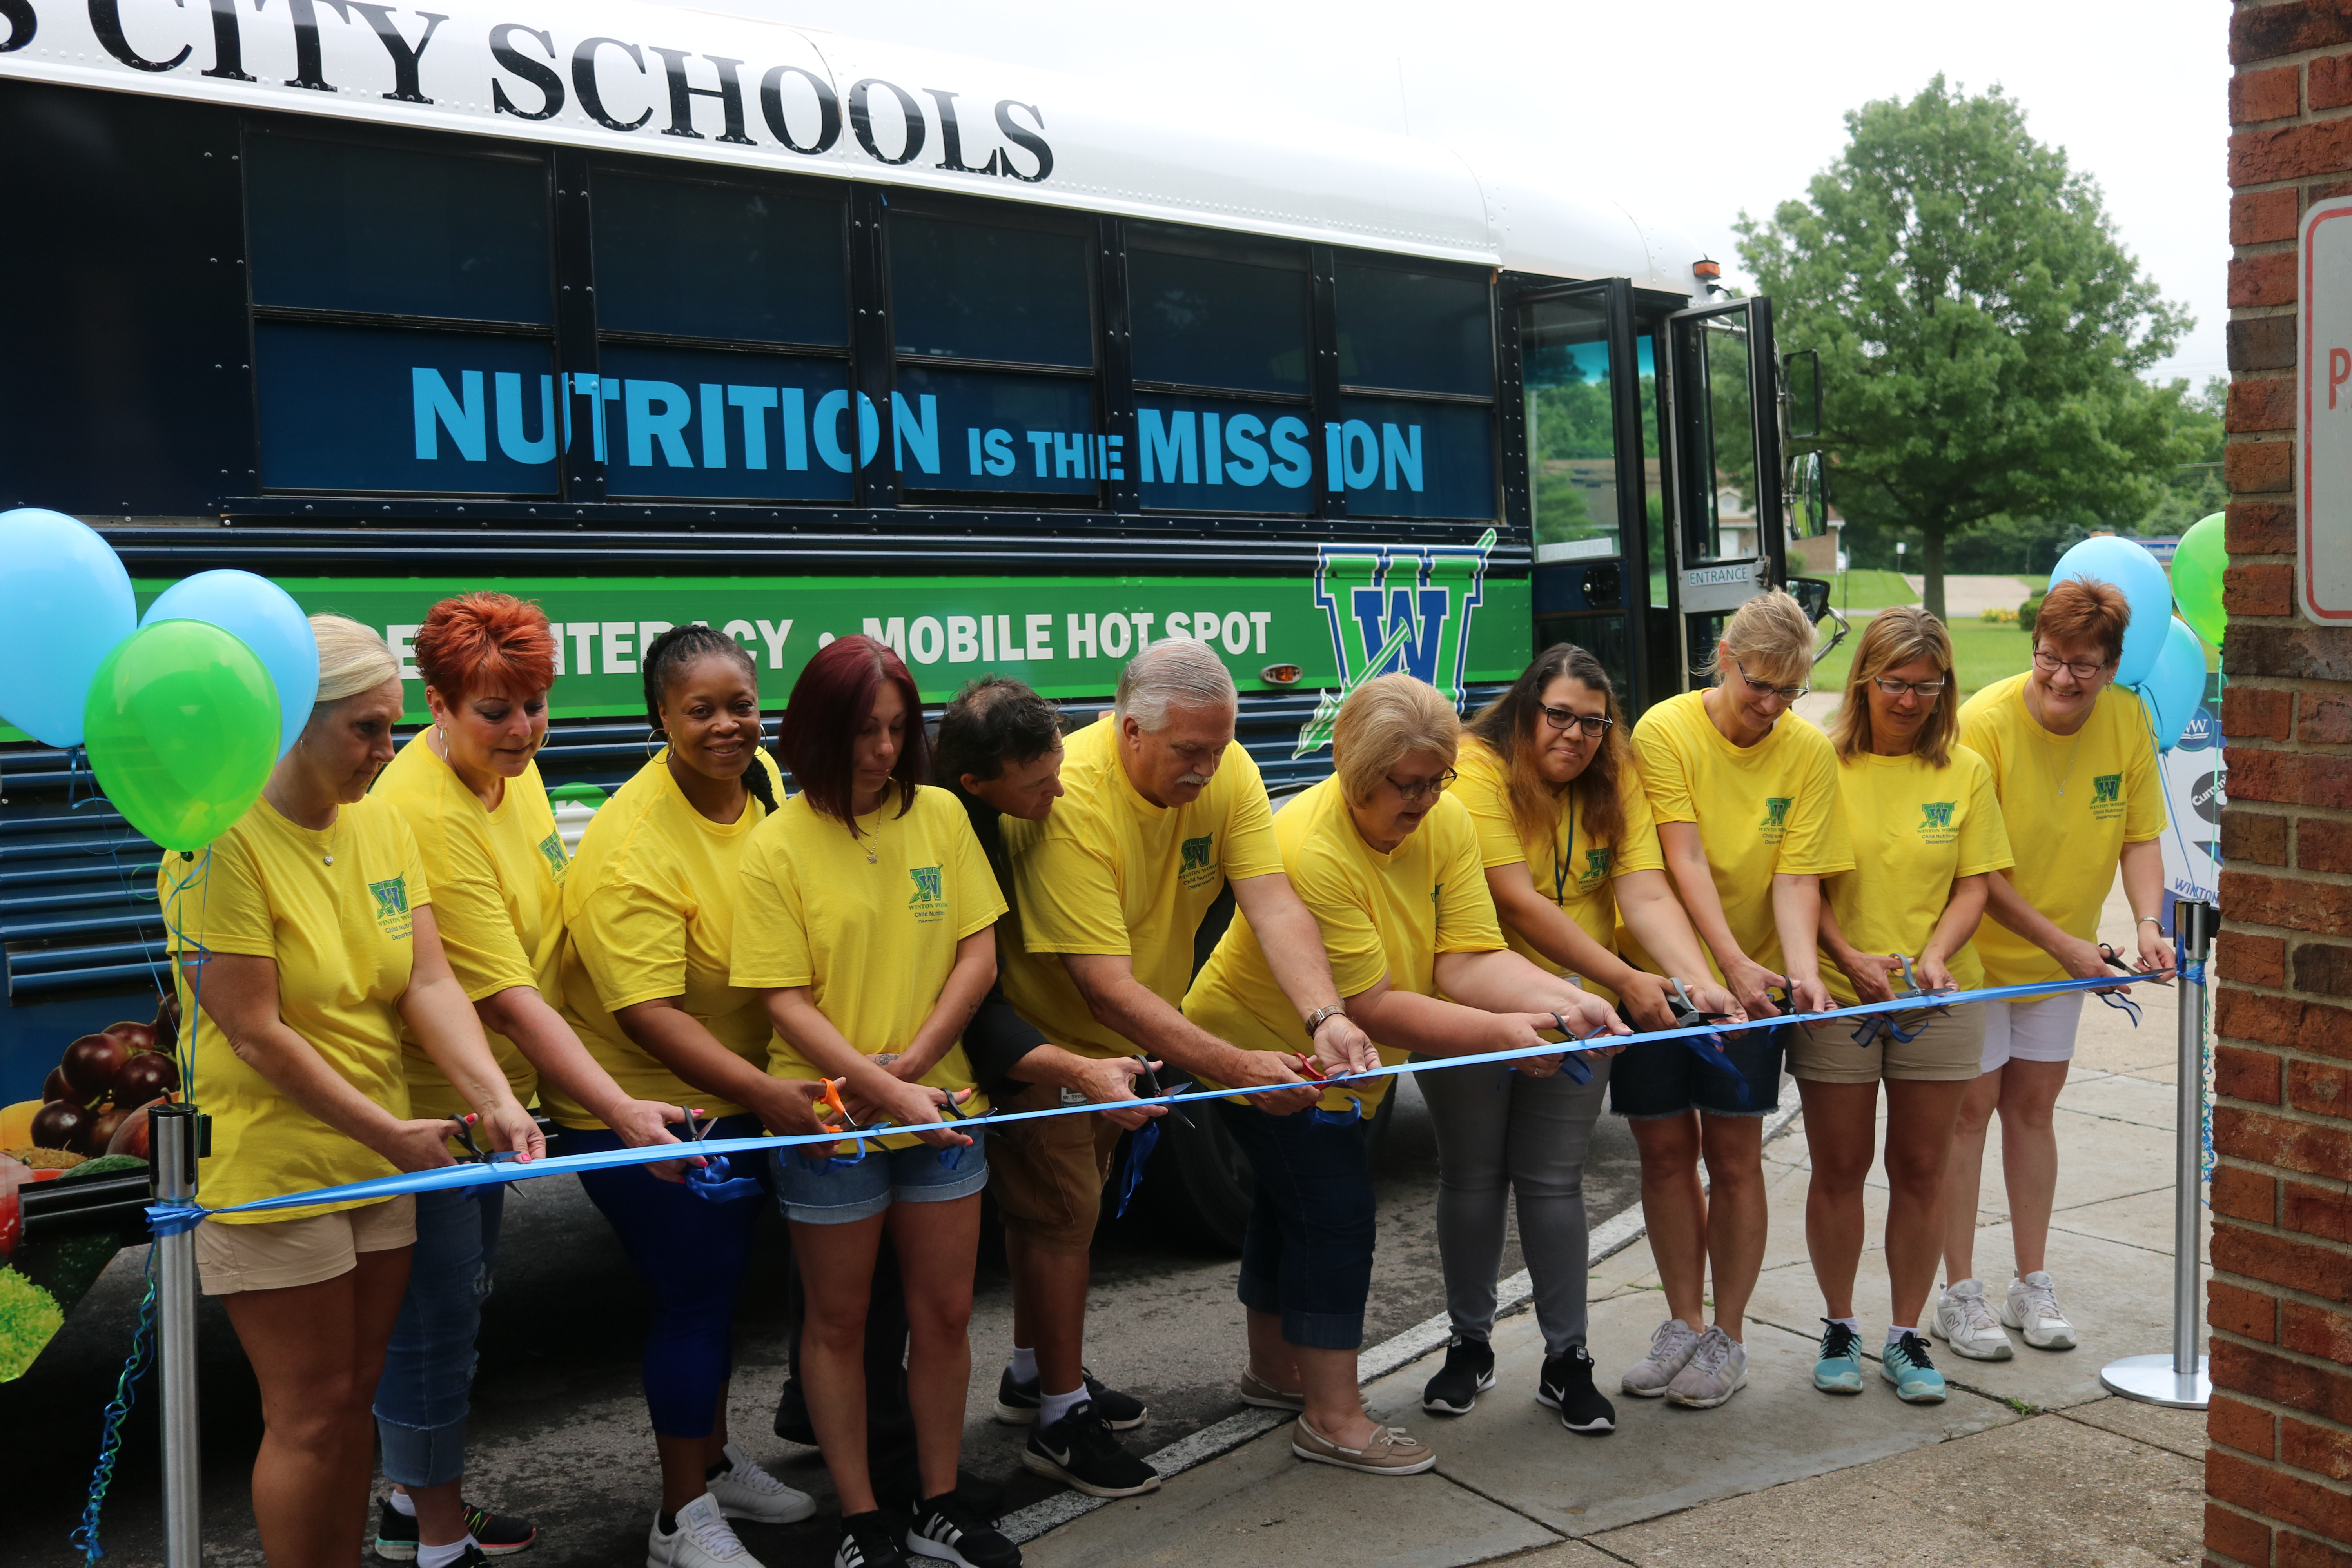 The Child Nutrition Department cutting the ribbon together at the ceremony. Photo by Drew Jackson.